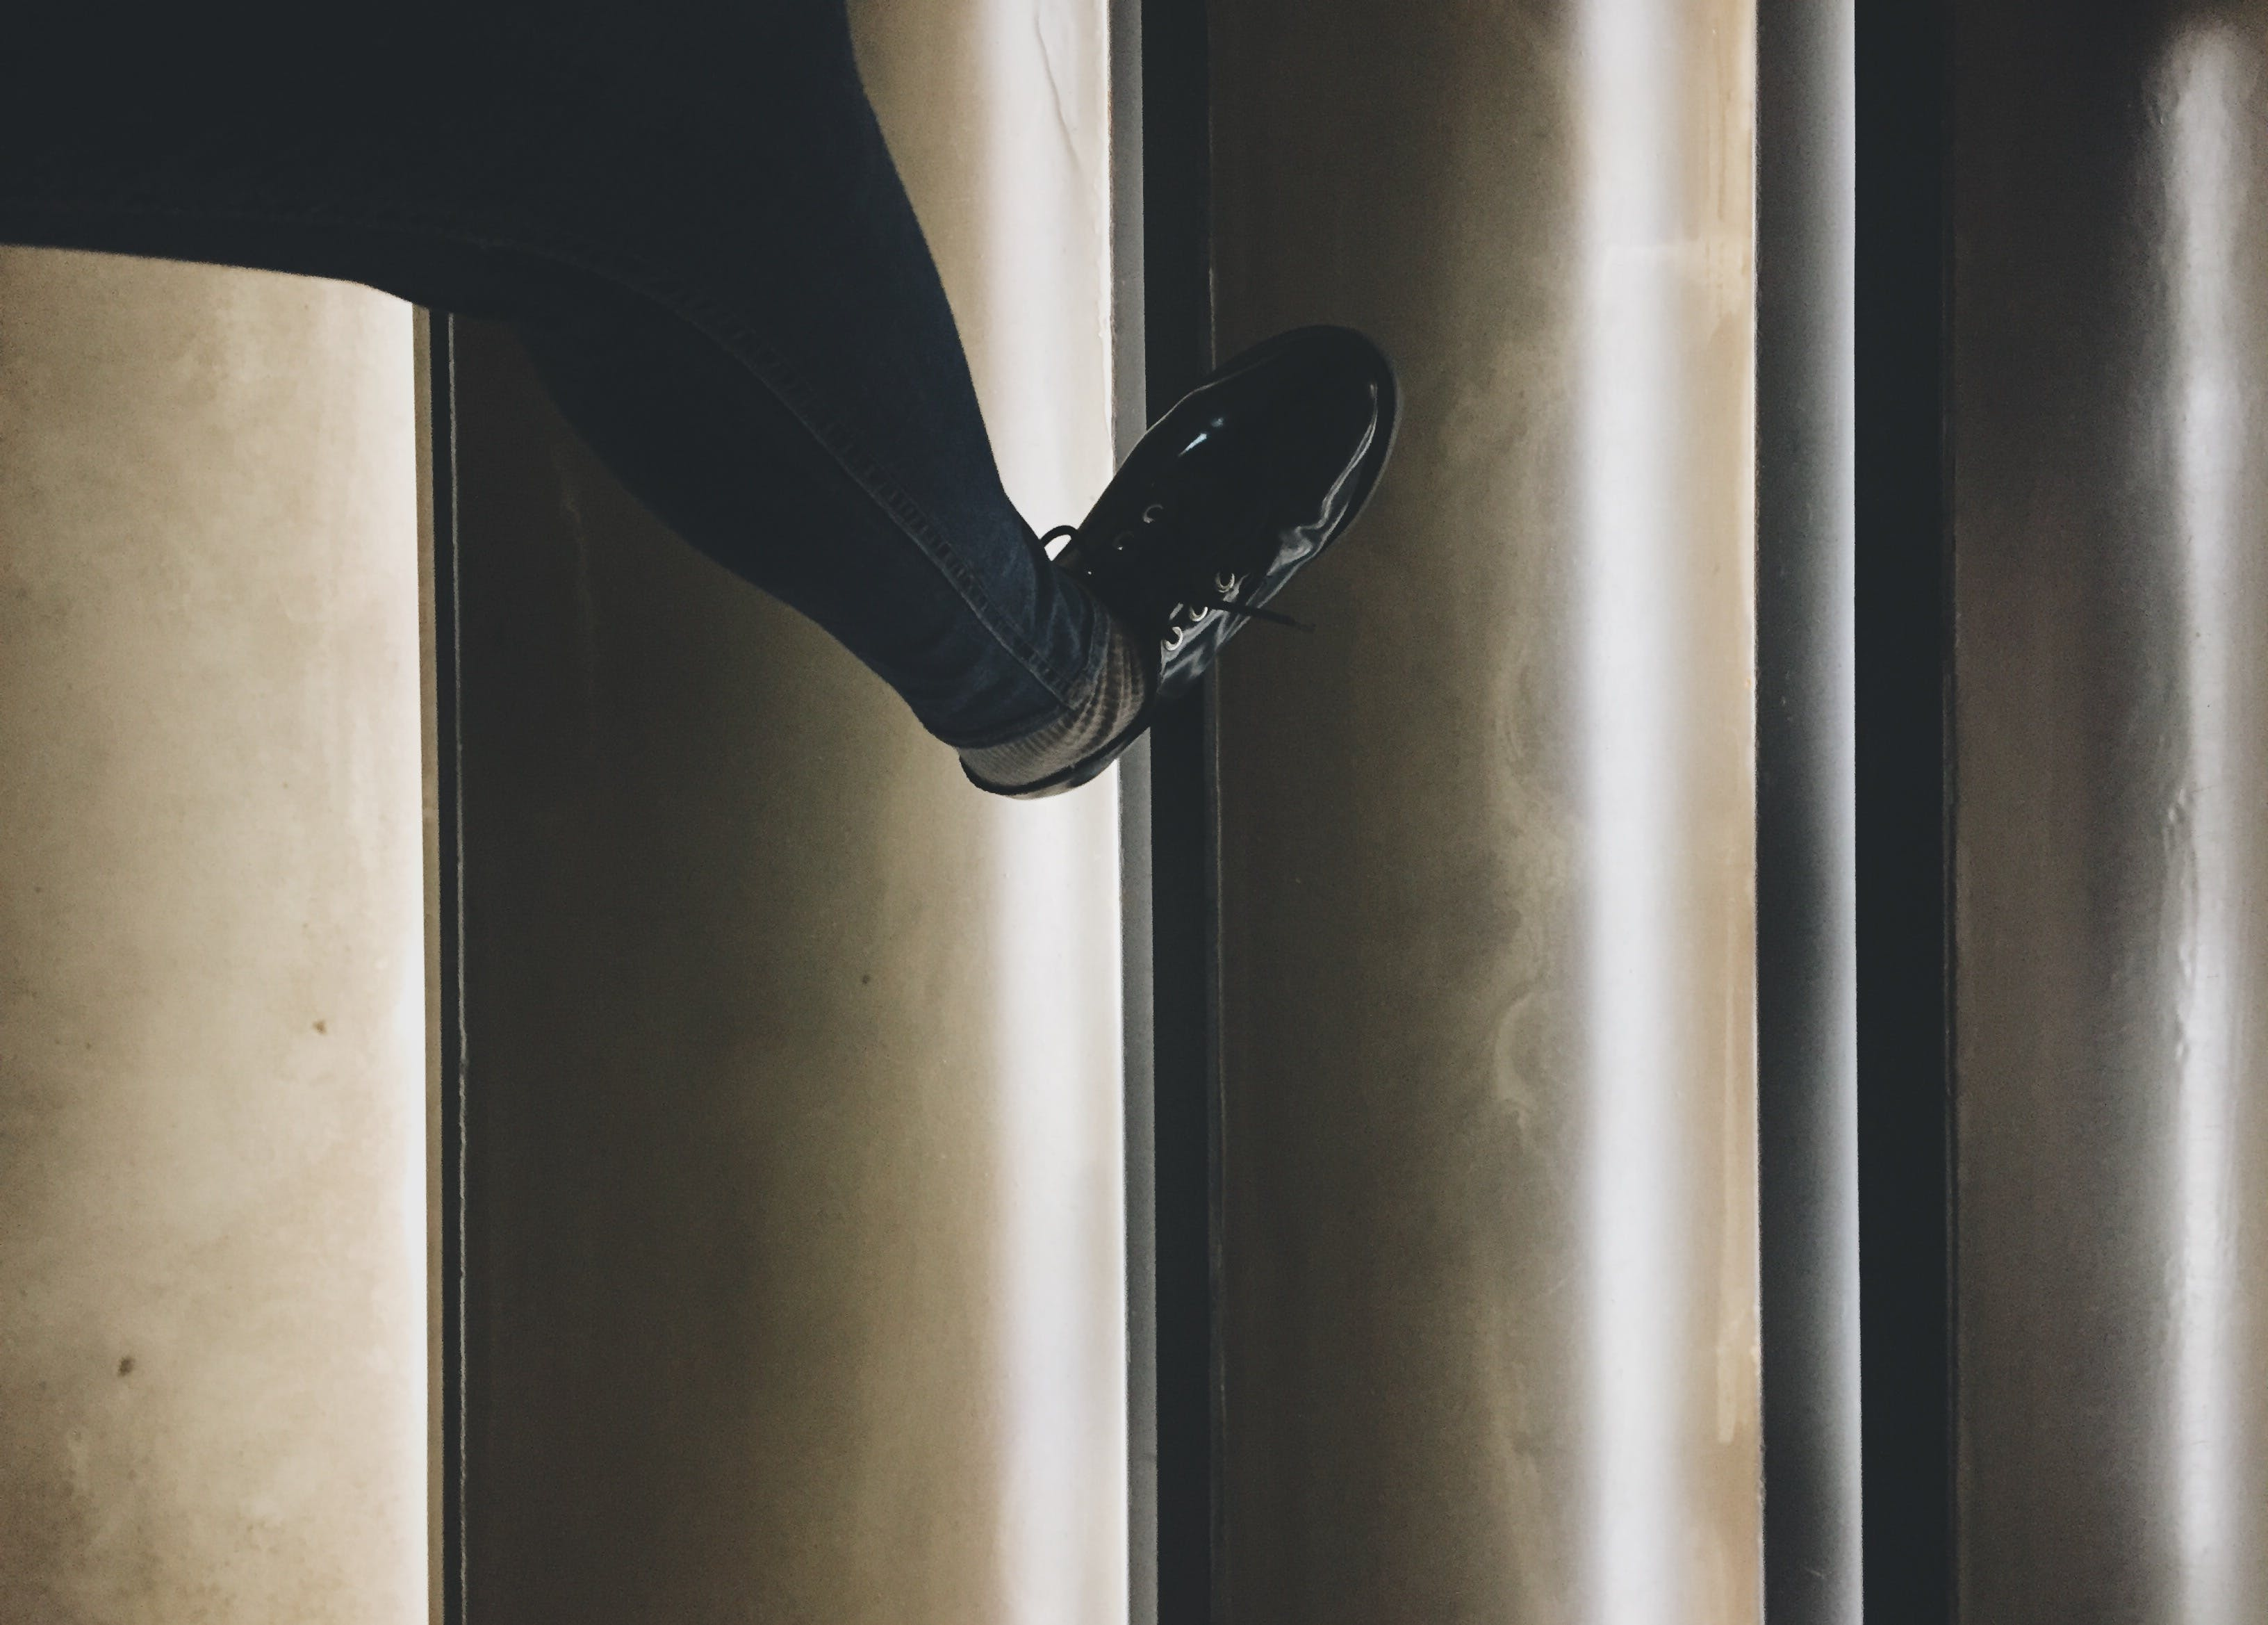 Free stock photo of shoes